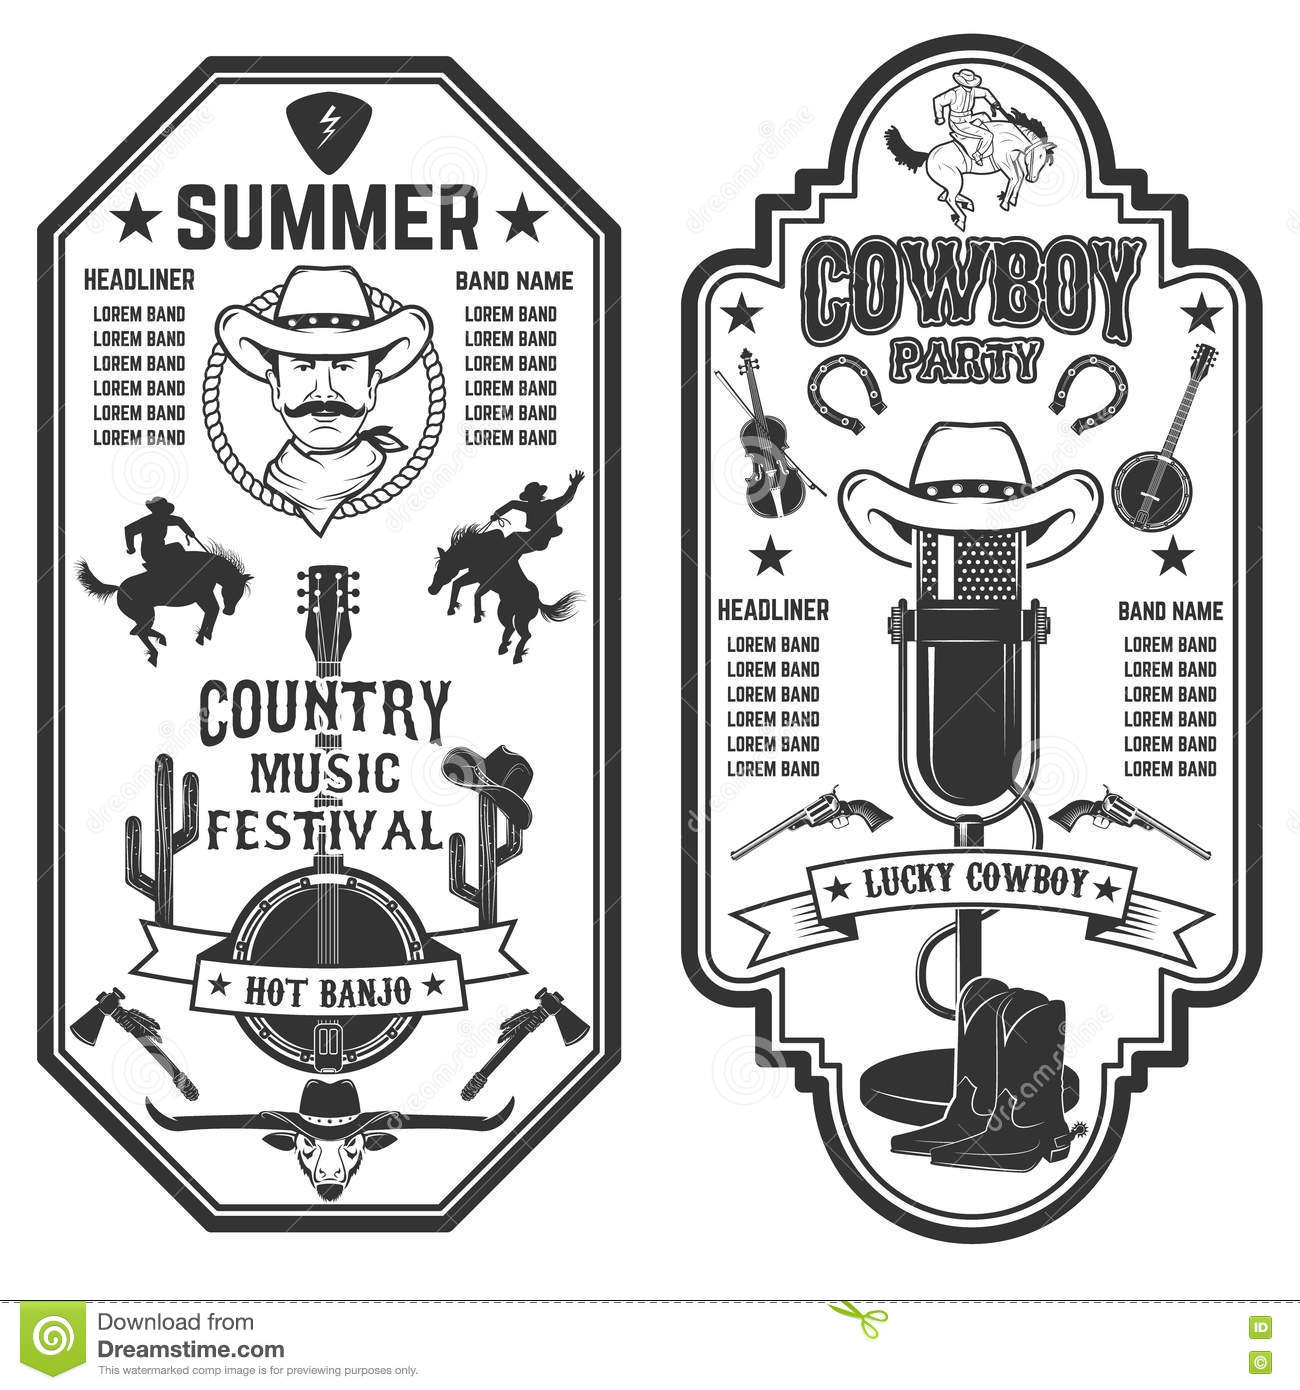 Folk Rock Party  Summer Country Music Festival Flyer